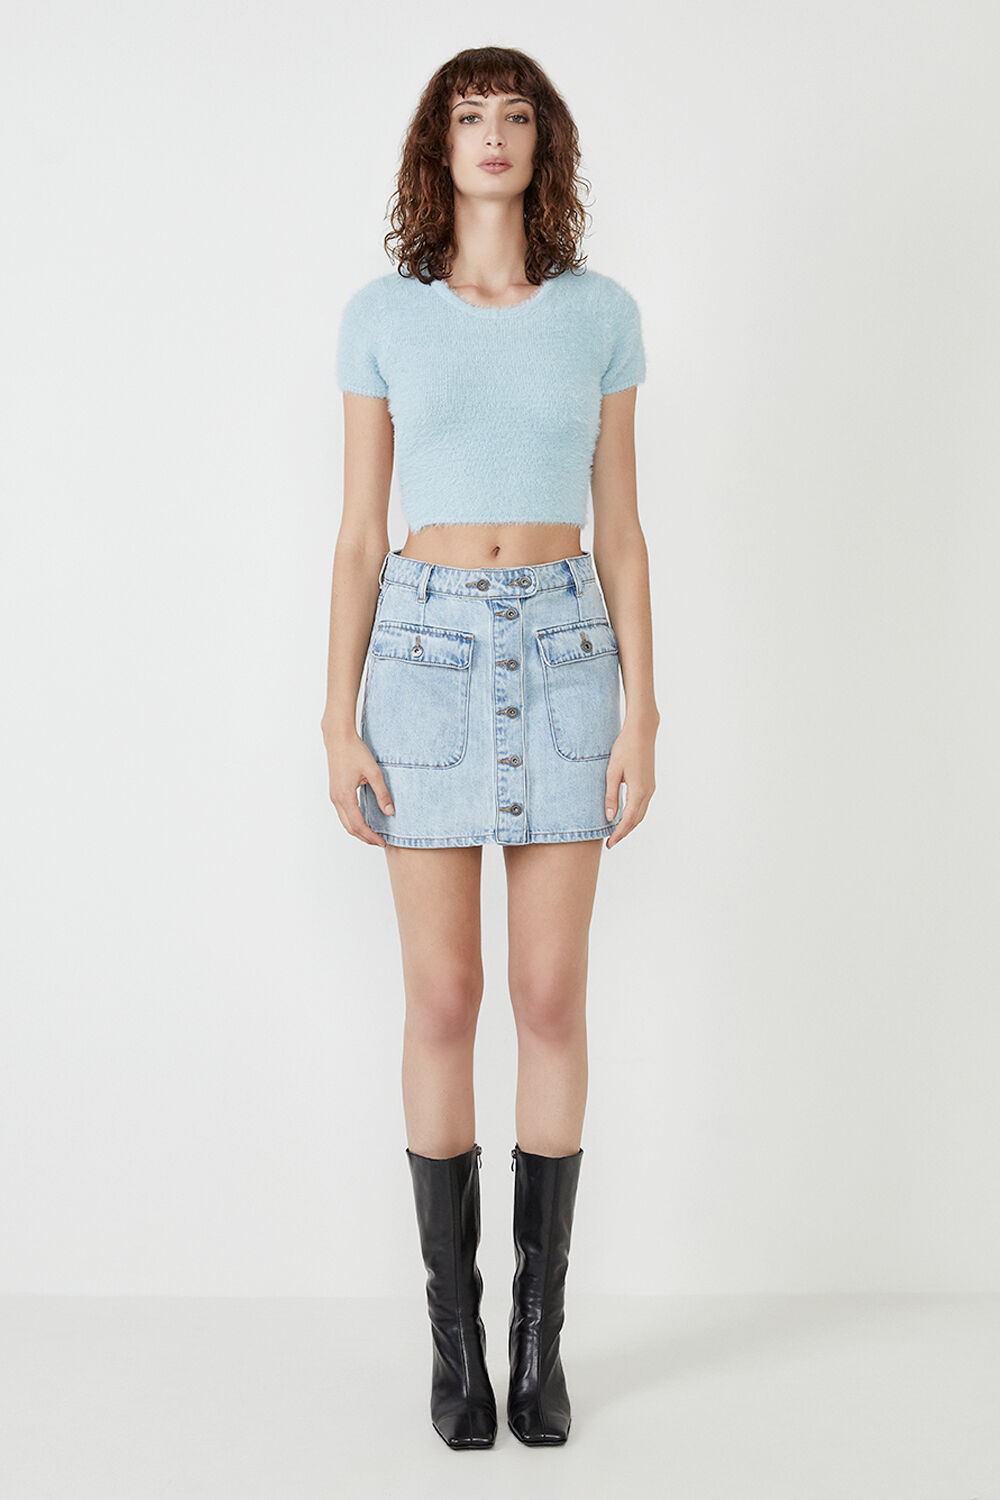 FLUFFY KNIT TOP in colour ASHLEY BLUE